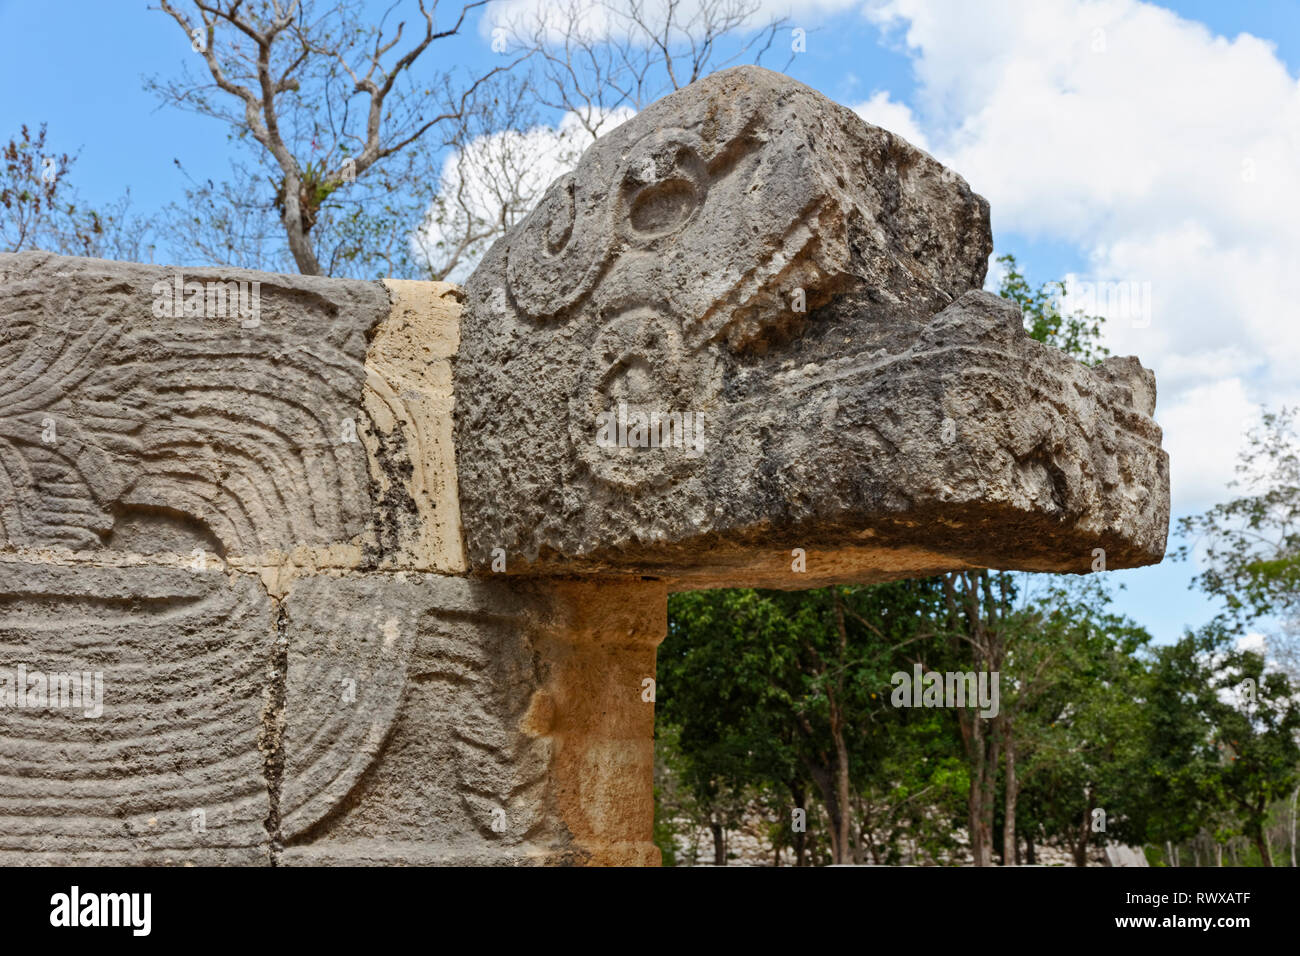 Close up of the head of a mayan carved stone snake with geometric patterns on the body from Chechen Itza - Stock Image